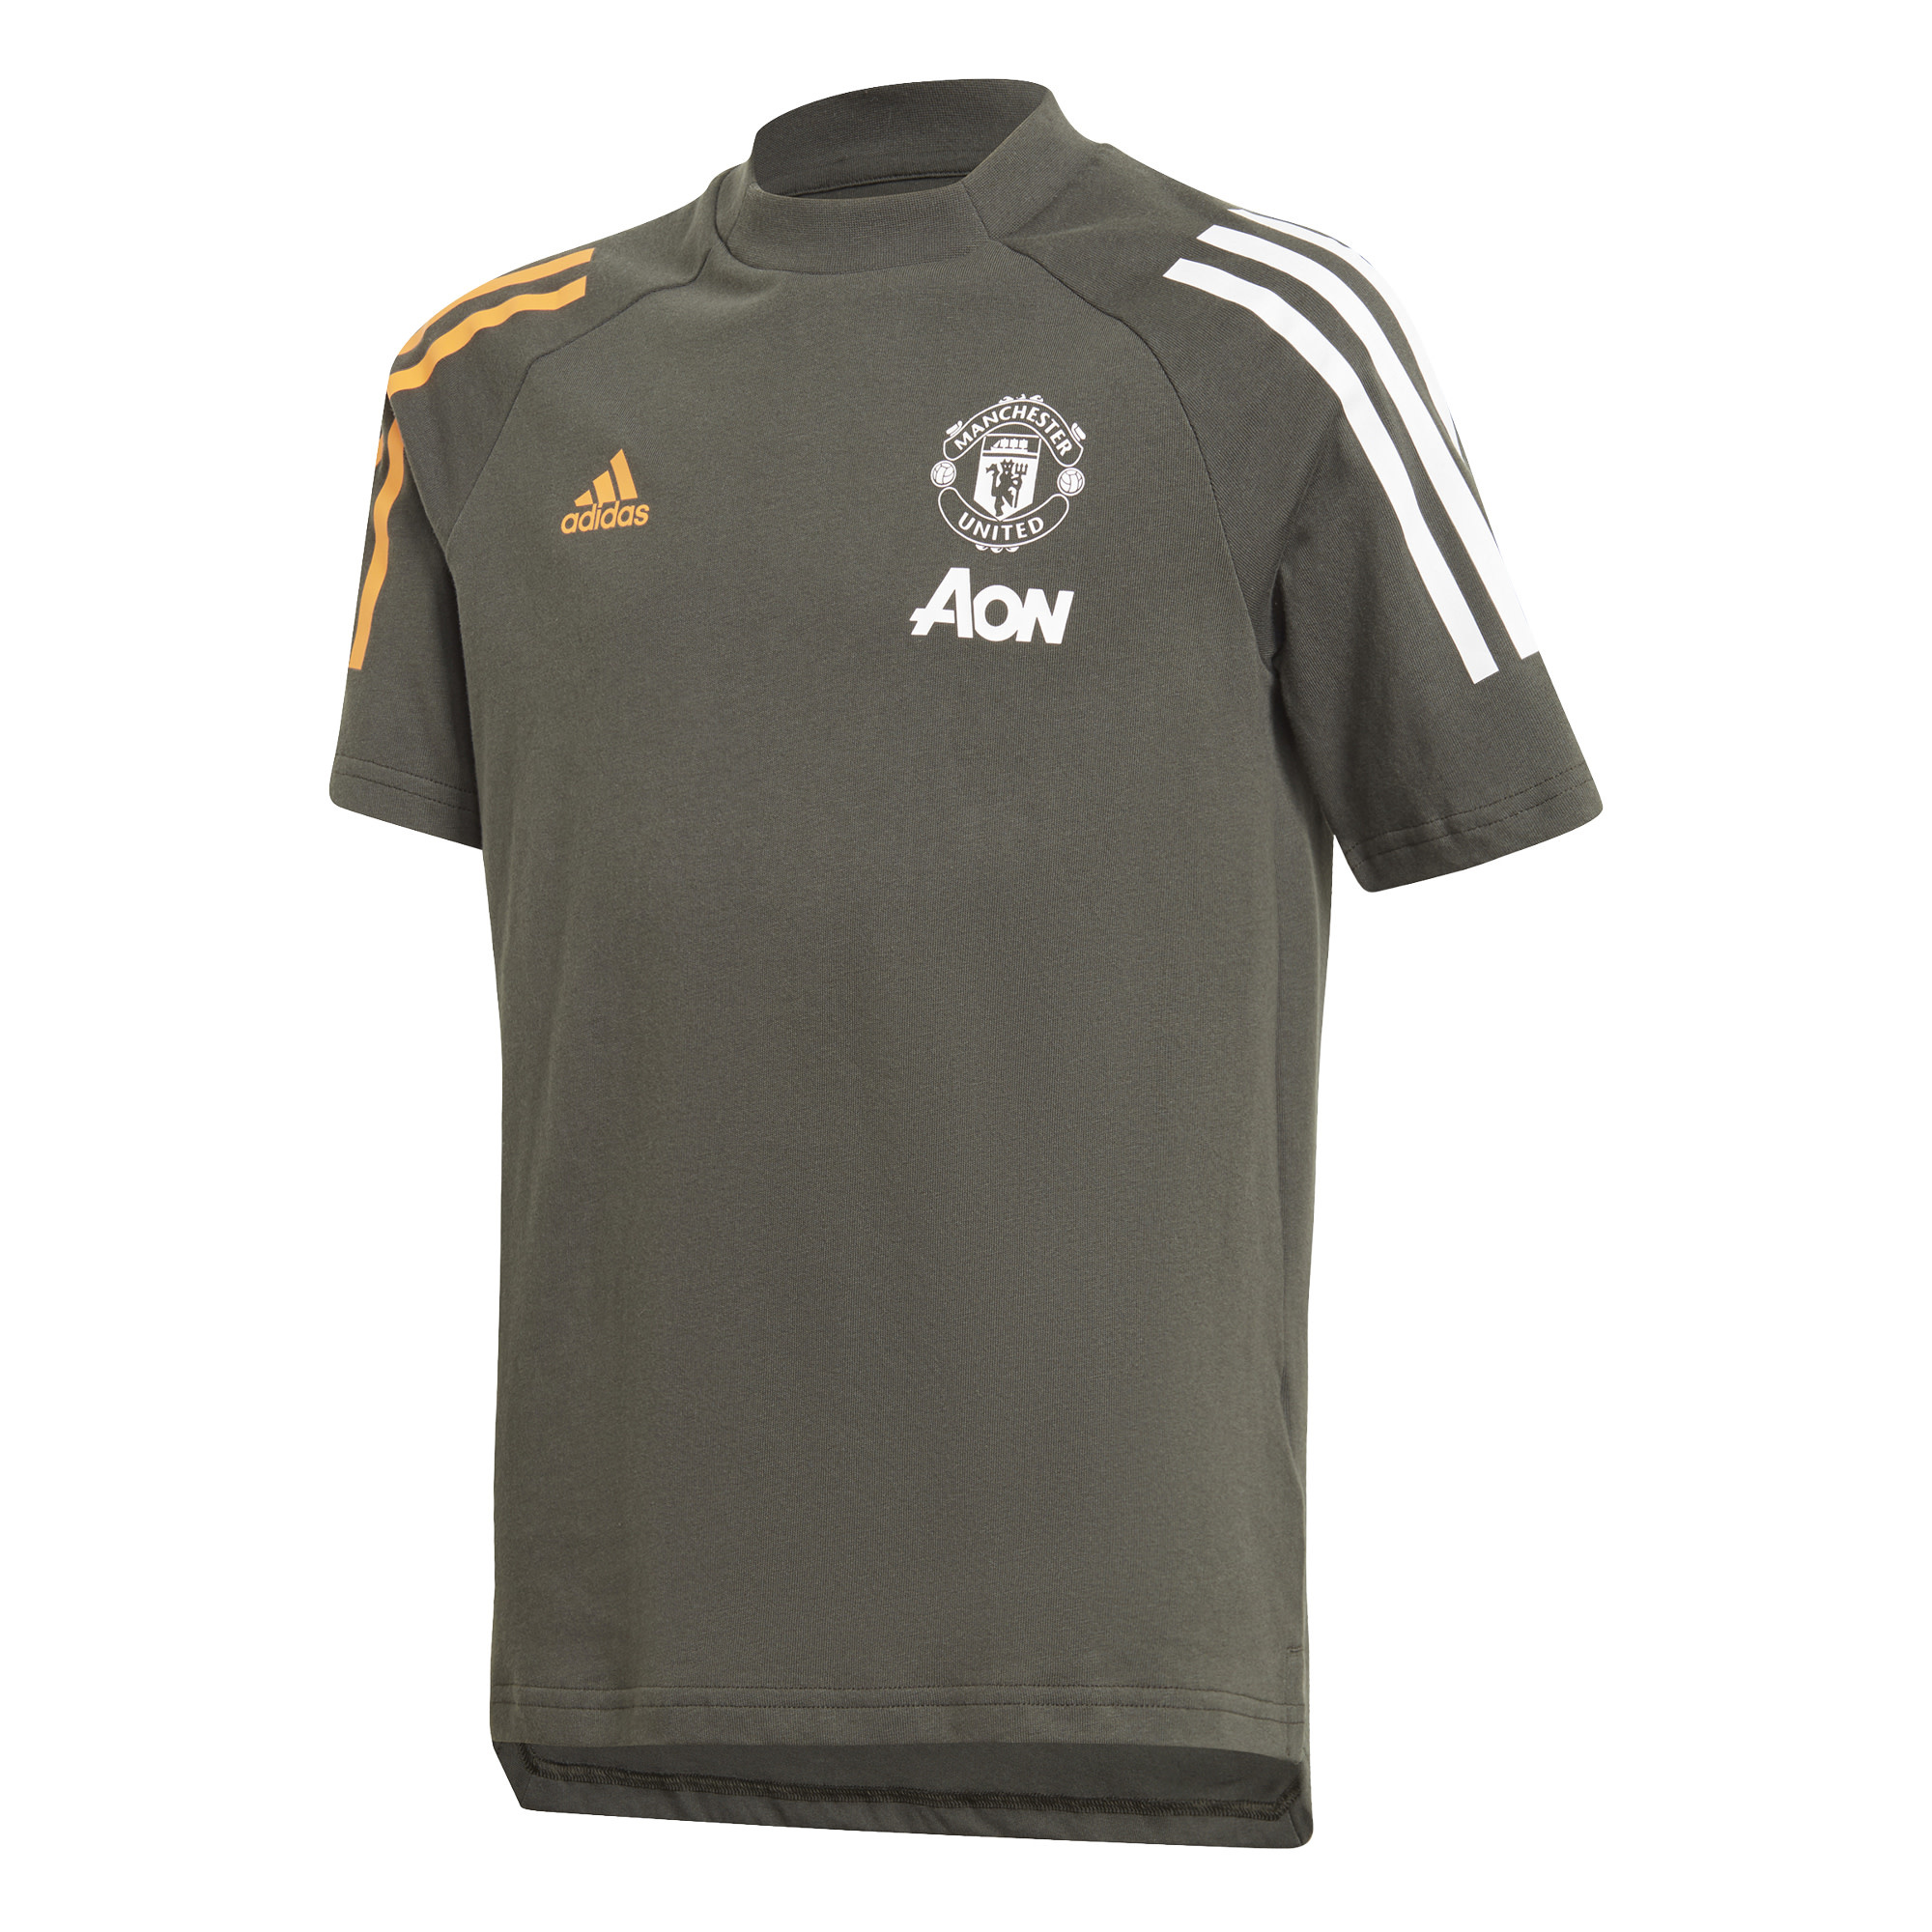 Adidas ADIDAS JR Manchester United Cotton Jersey '20-'21